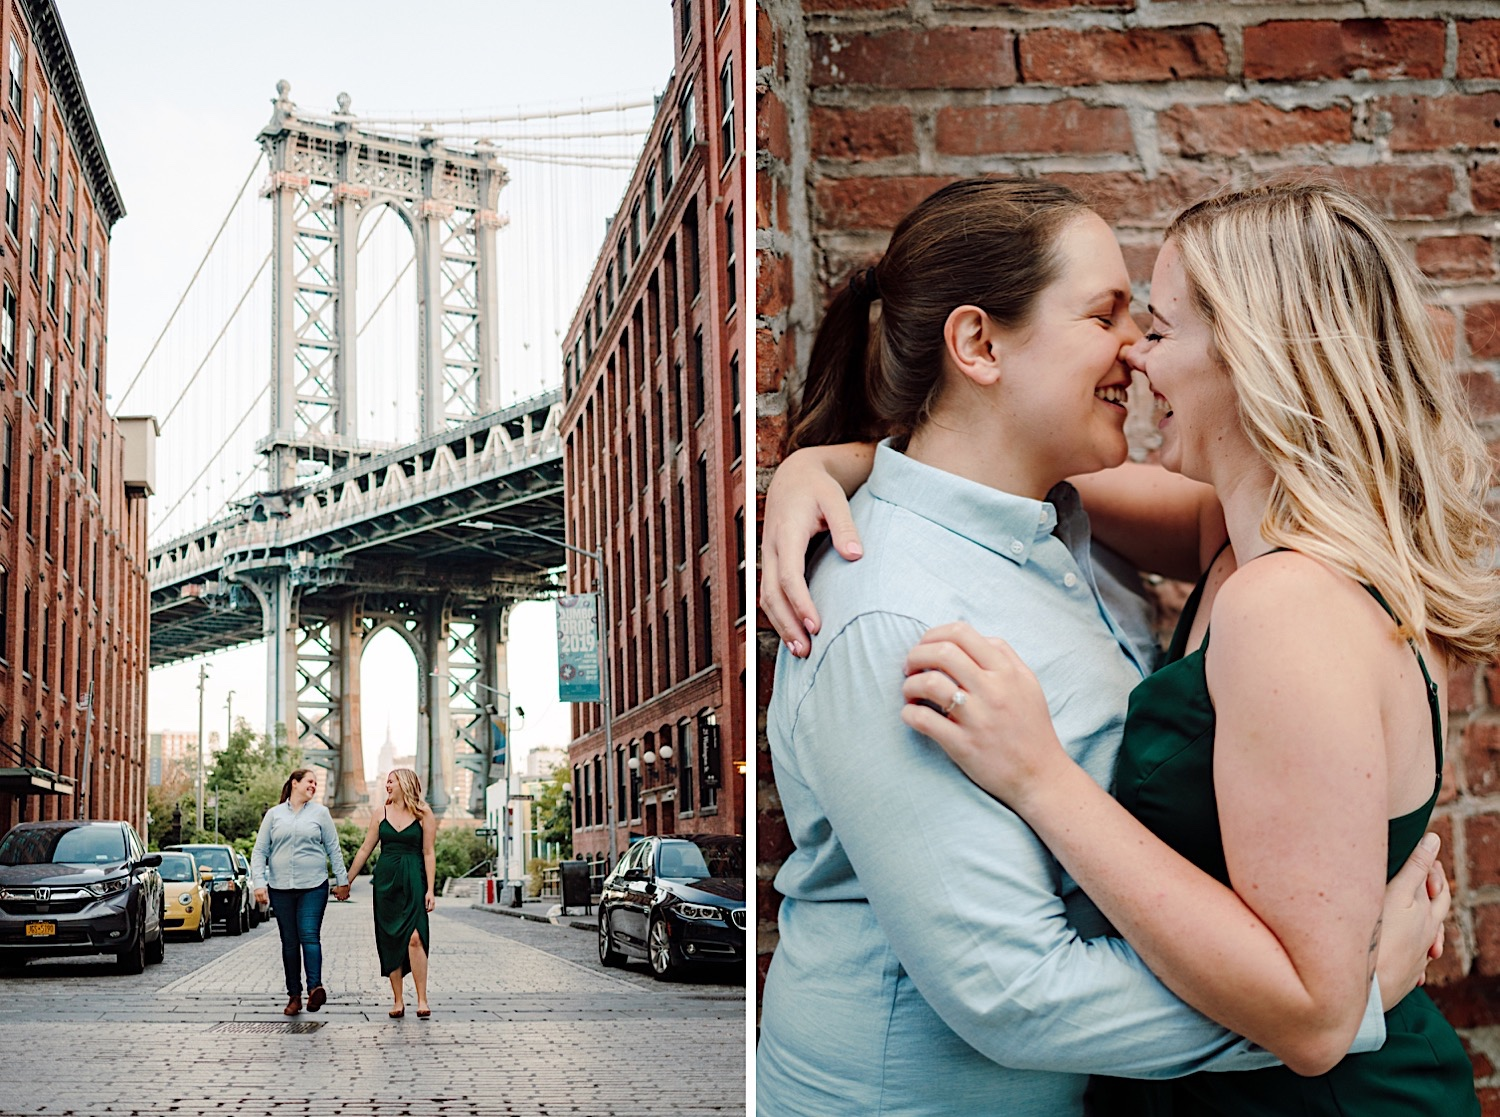 NYC LGBT Wedding Photographer, DUMBO engagement session gallery, LGBT Wedding Photographer, NYC Gay Wedding Photographer, DUMBO Engagement Photos